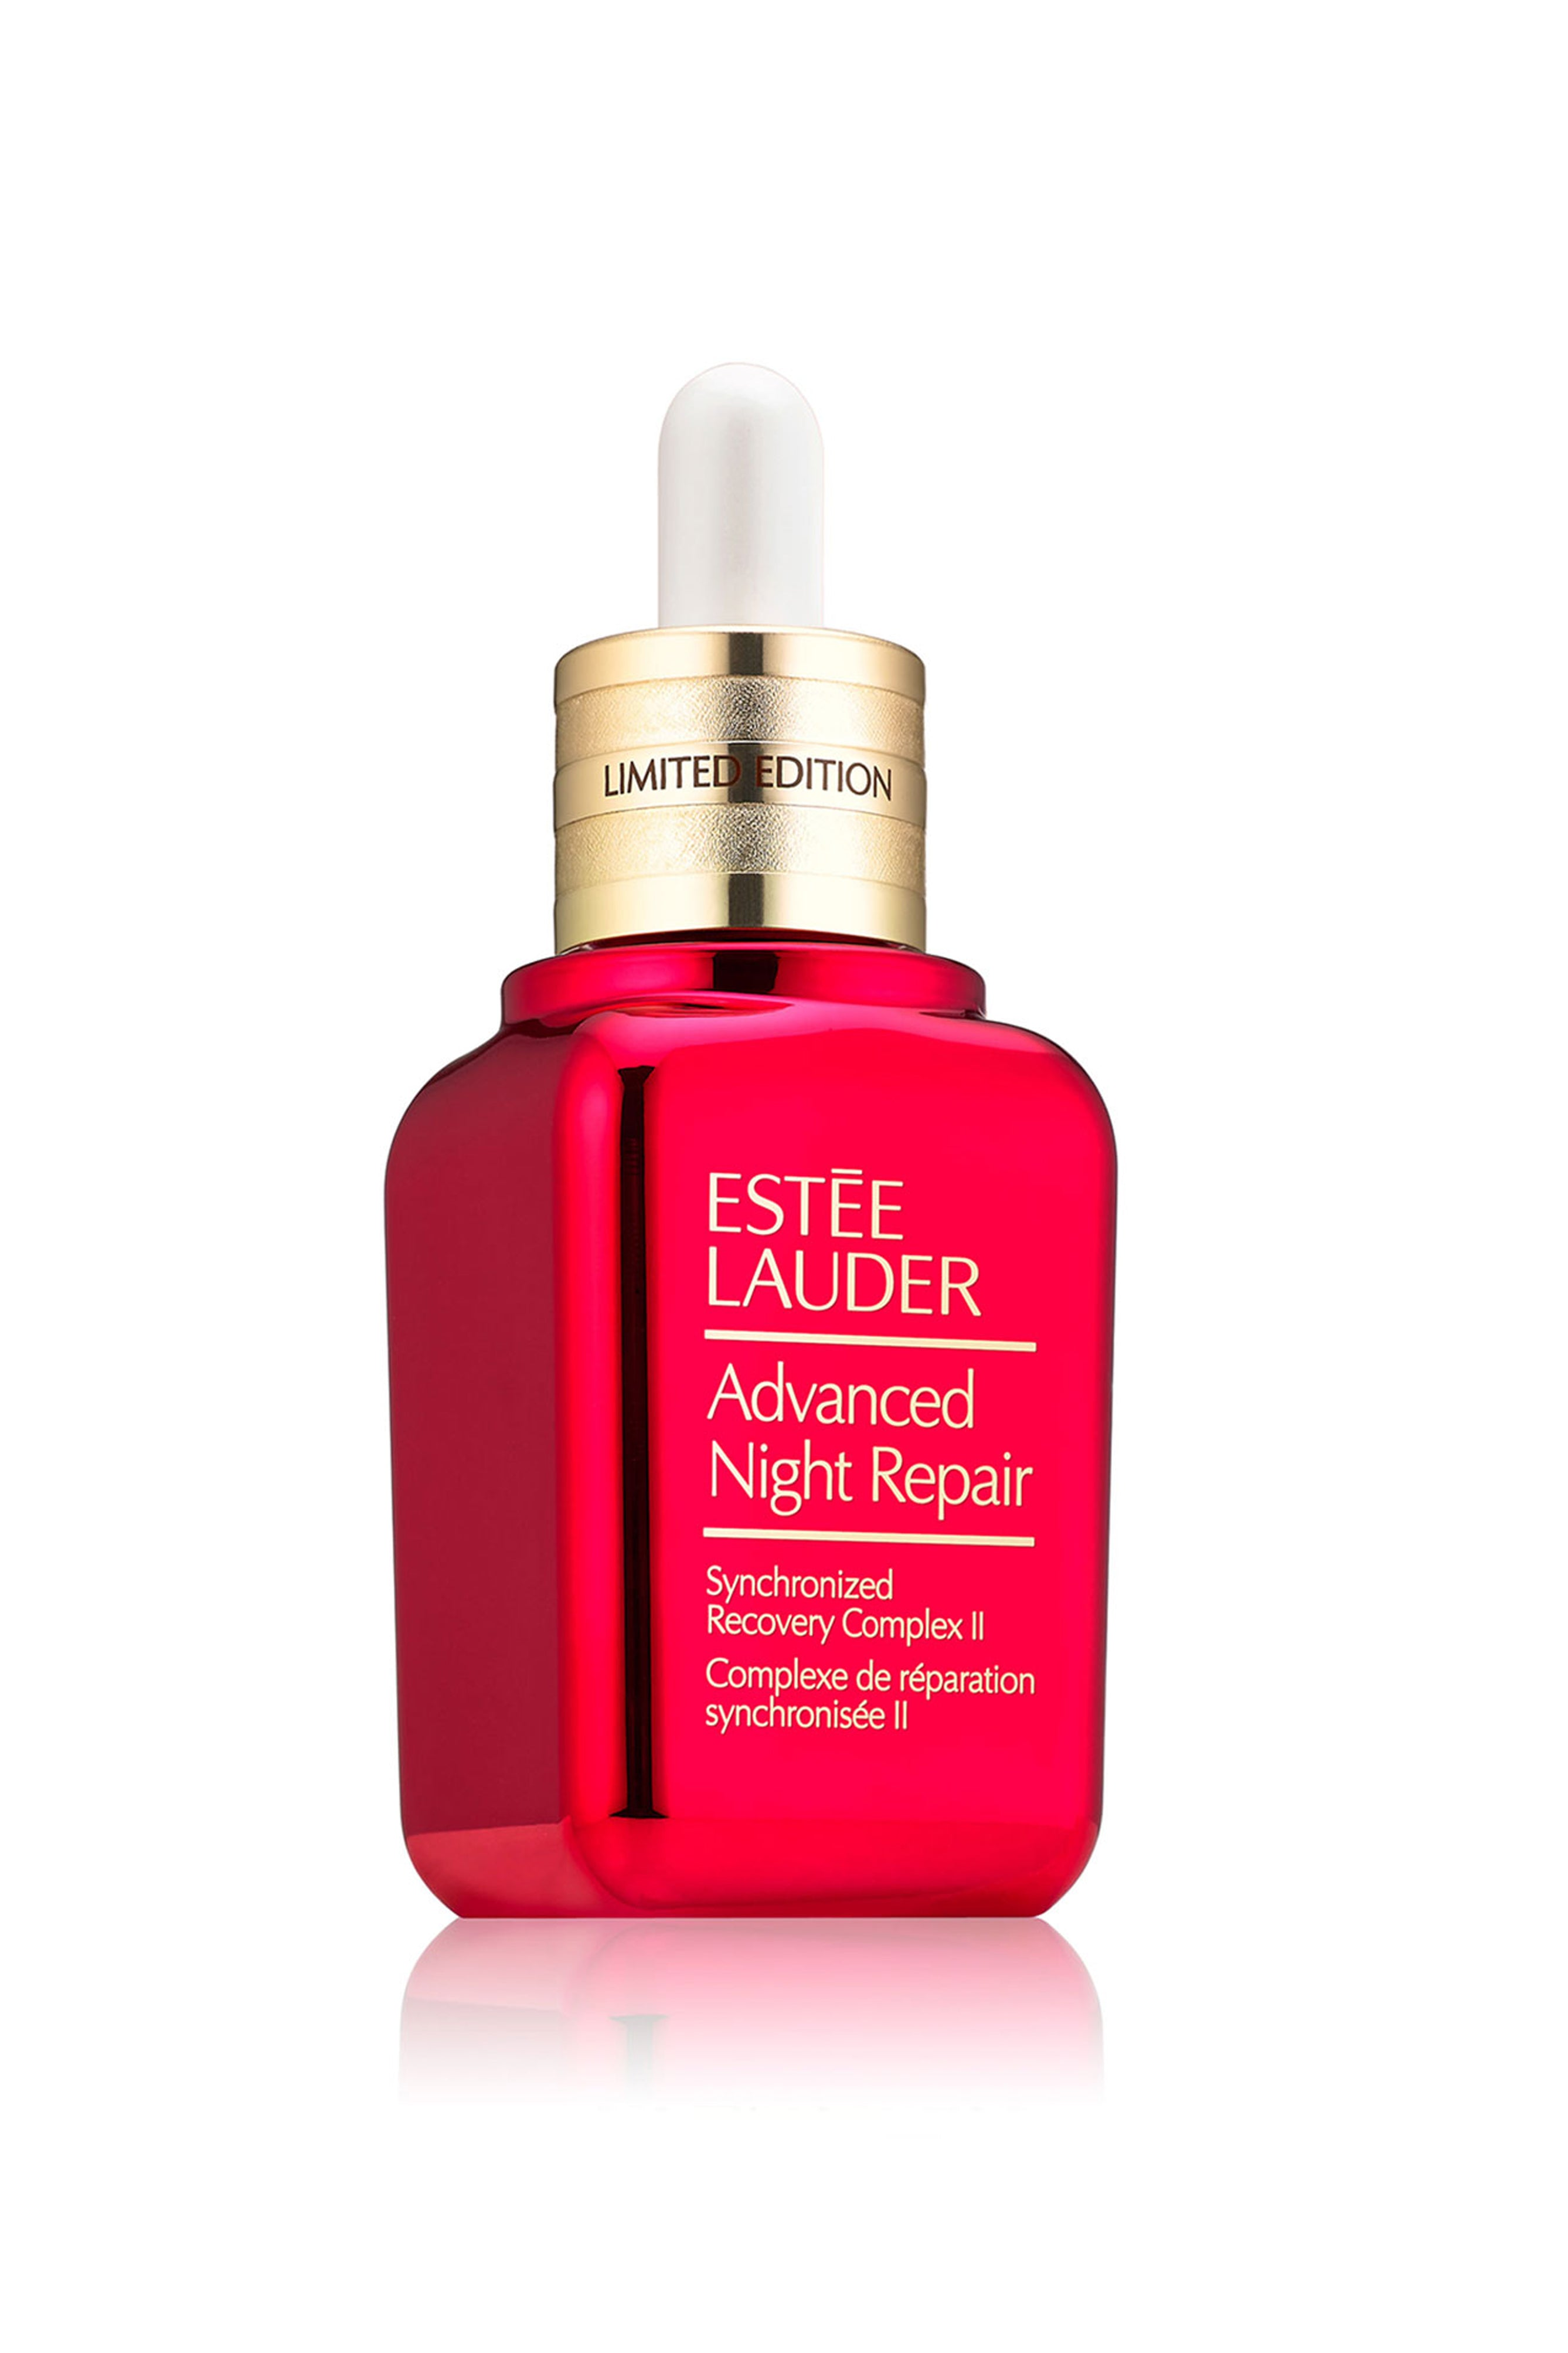 ESTÉE LAUDER Advanced Night Repair Synchronized Recovery Complex II in Red Bottle 50ml - Life Pharmacy St Lukes